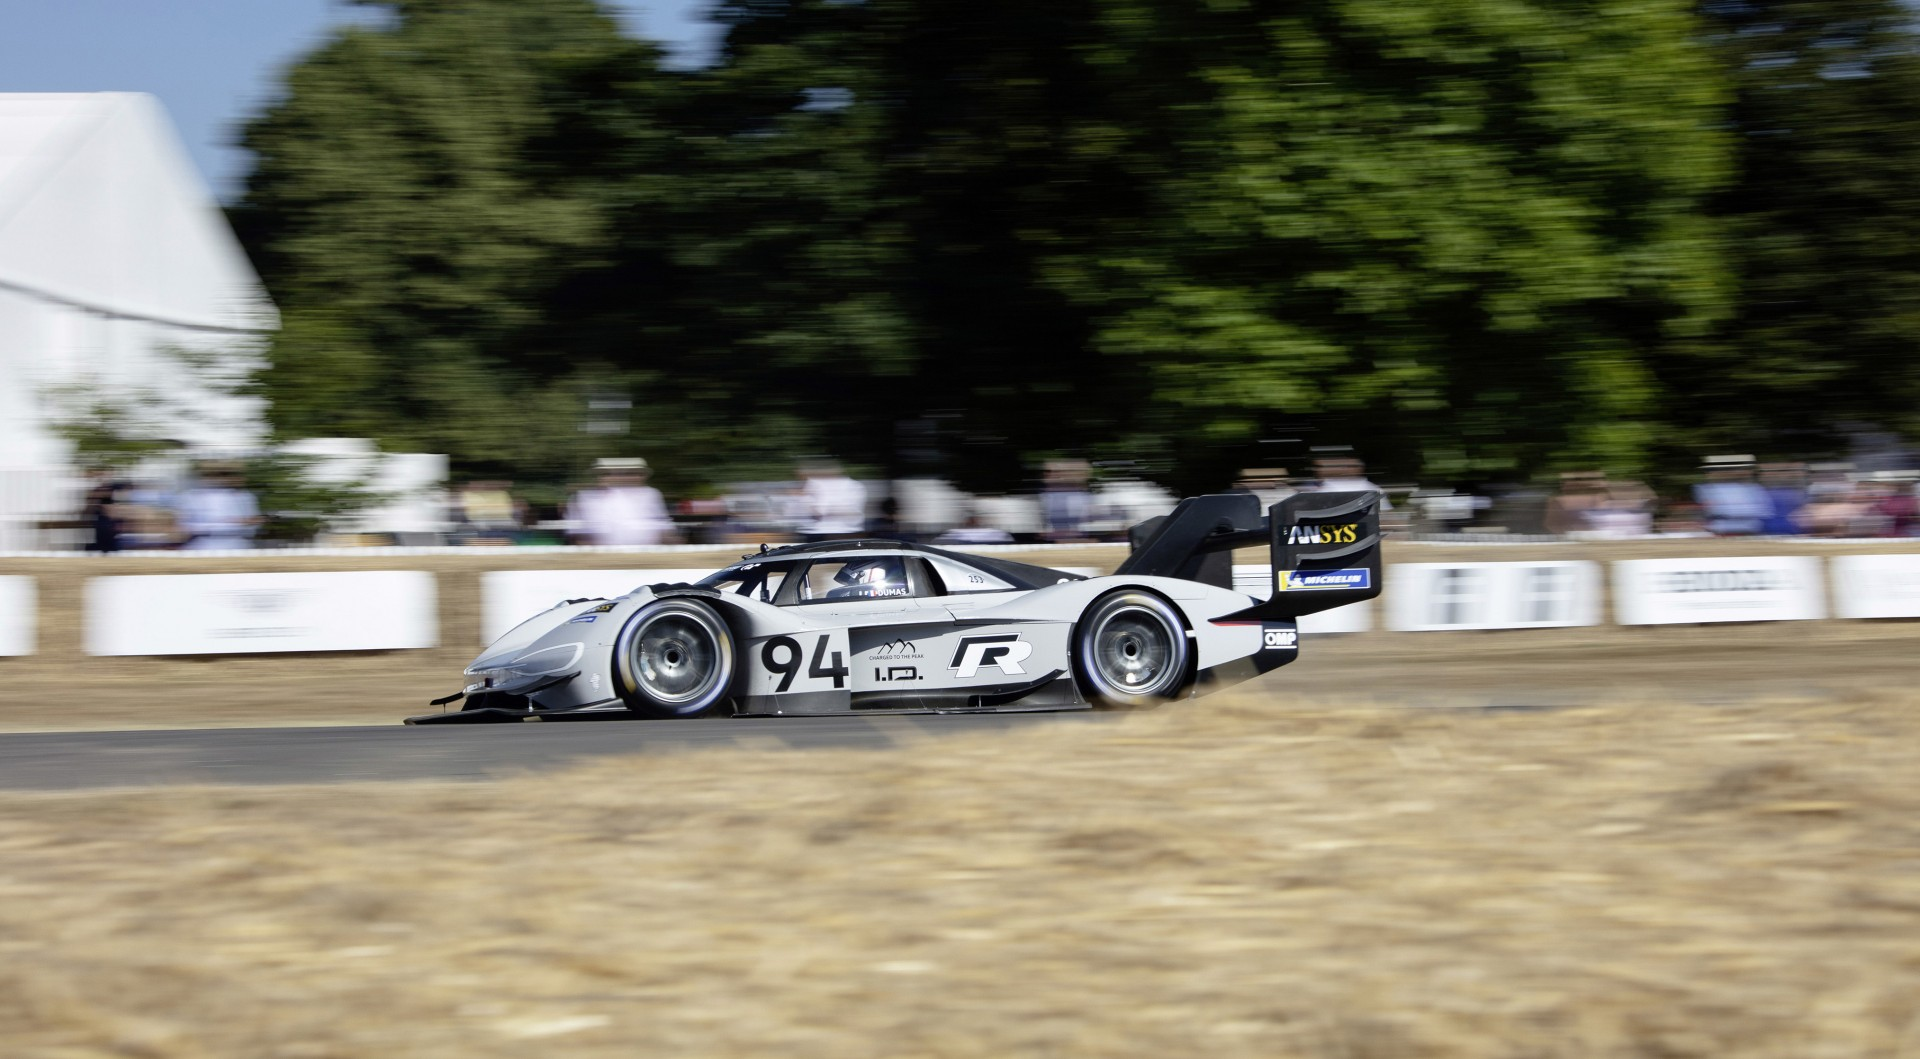 Volkswagen I.D. R Pikes Peak - Goodwood 1